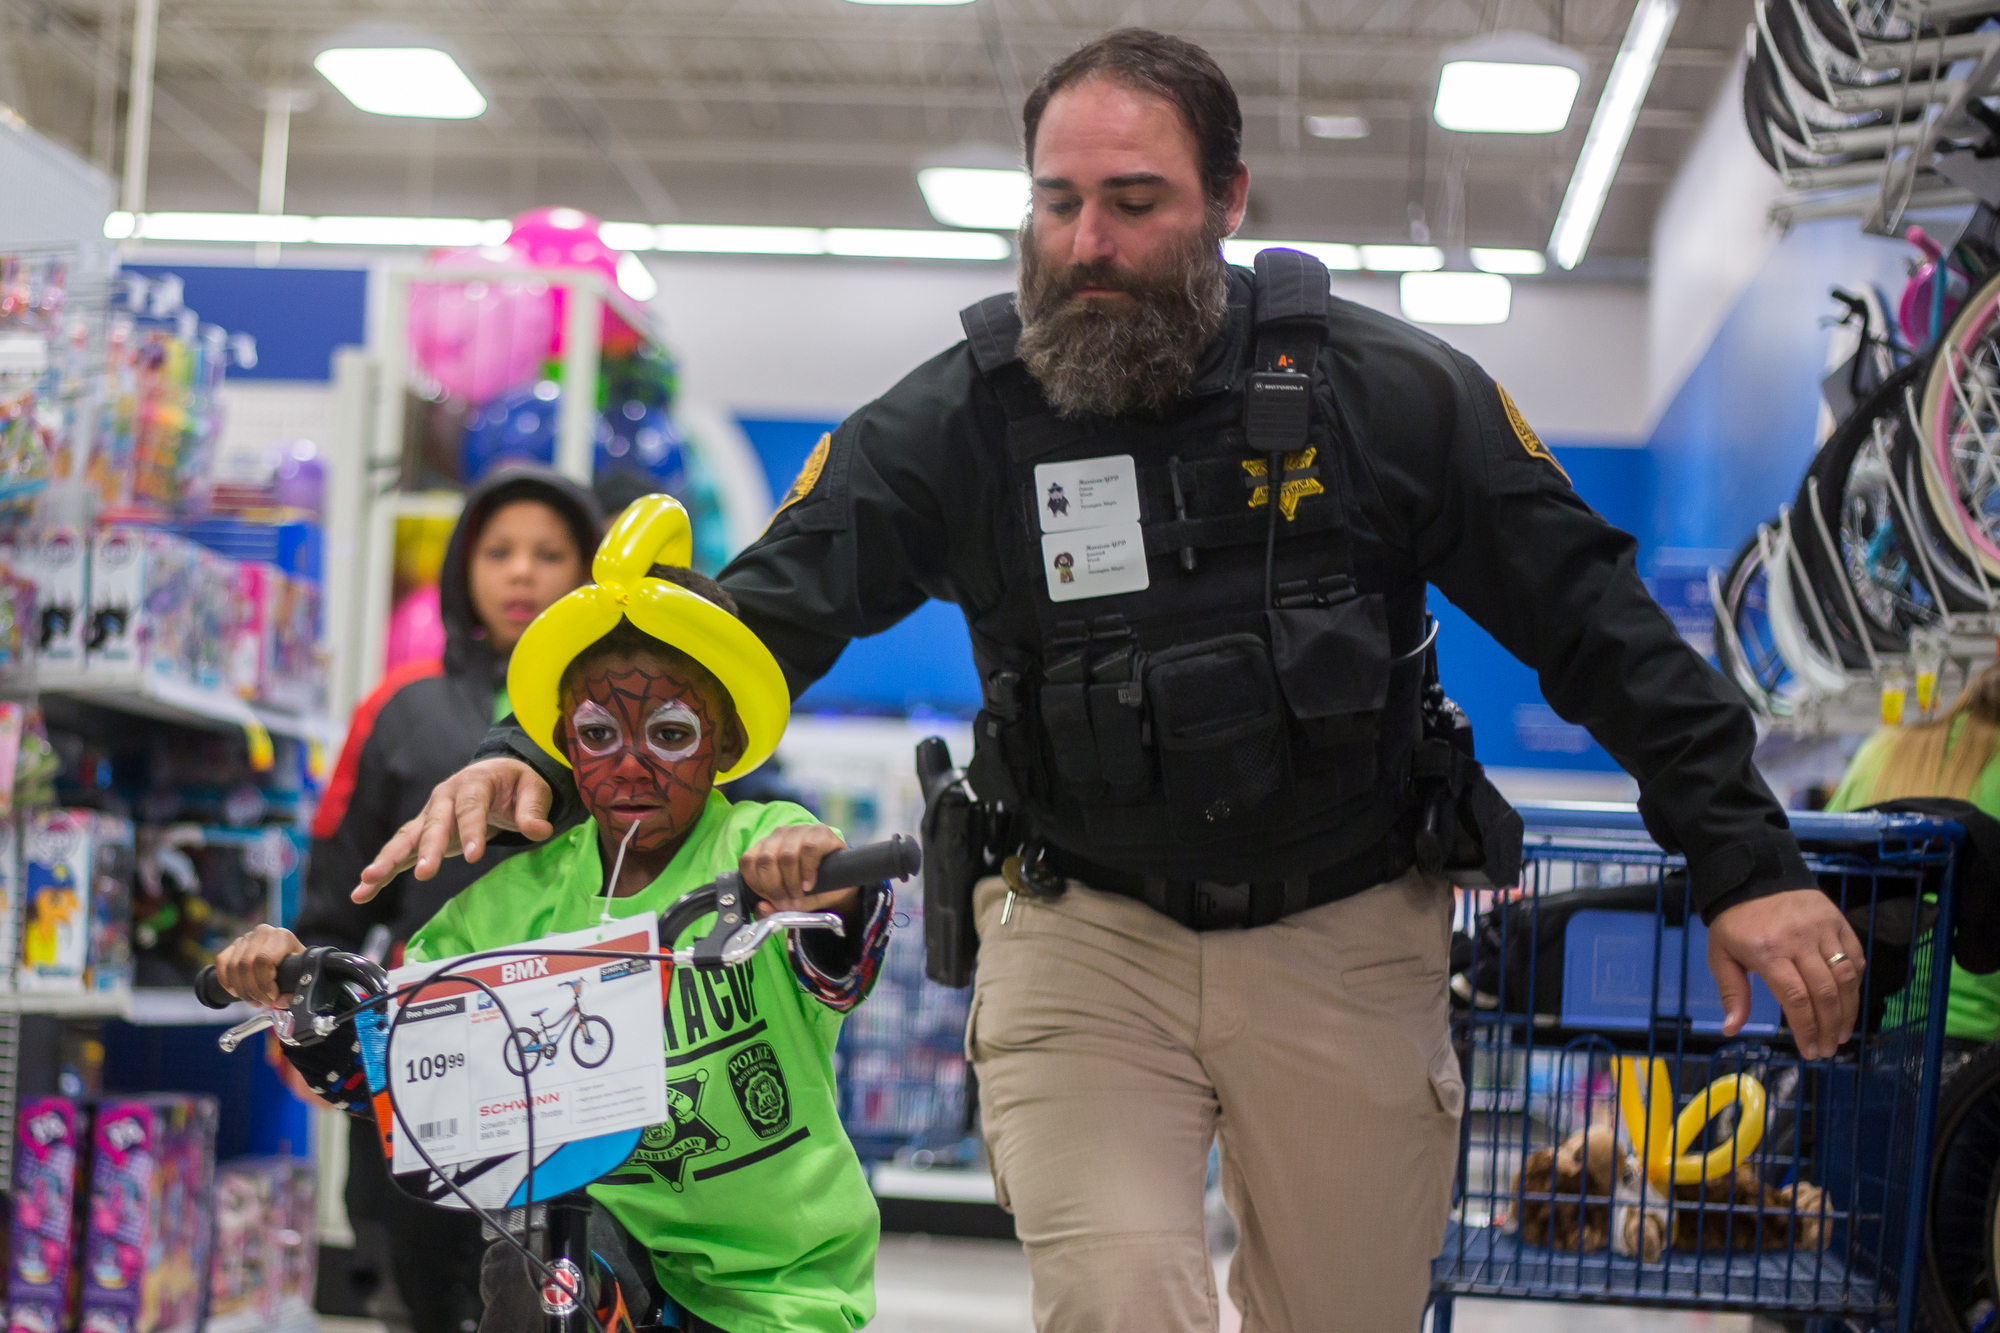 Washtenaw County Sheriff Deputy Buffa pushes Jametrick Woods, 6, on a bike at Meijer in Belleville during the Shop with a Cop on Wednesday, December 7, 2016. The shop with a Cop program paired 100 children with about 120 local police officers, sheriff deputies and volunteers for a $125 shopping trip a Meijer. Matt Weigand | The Ann Arbor News